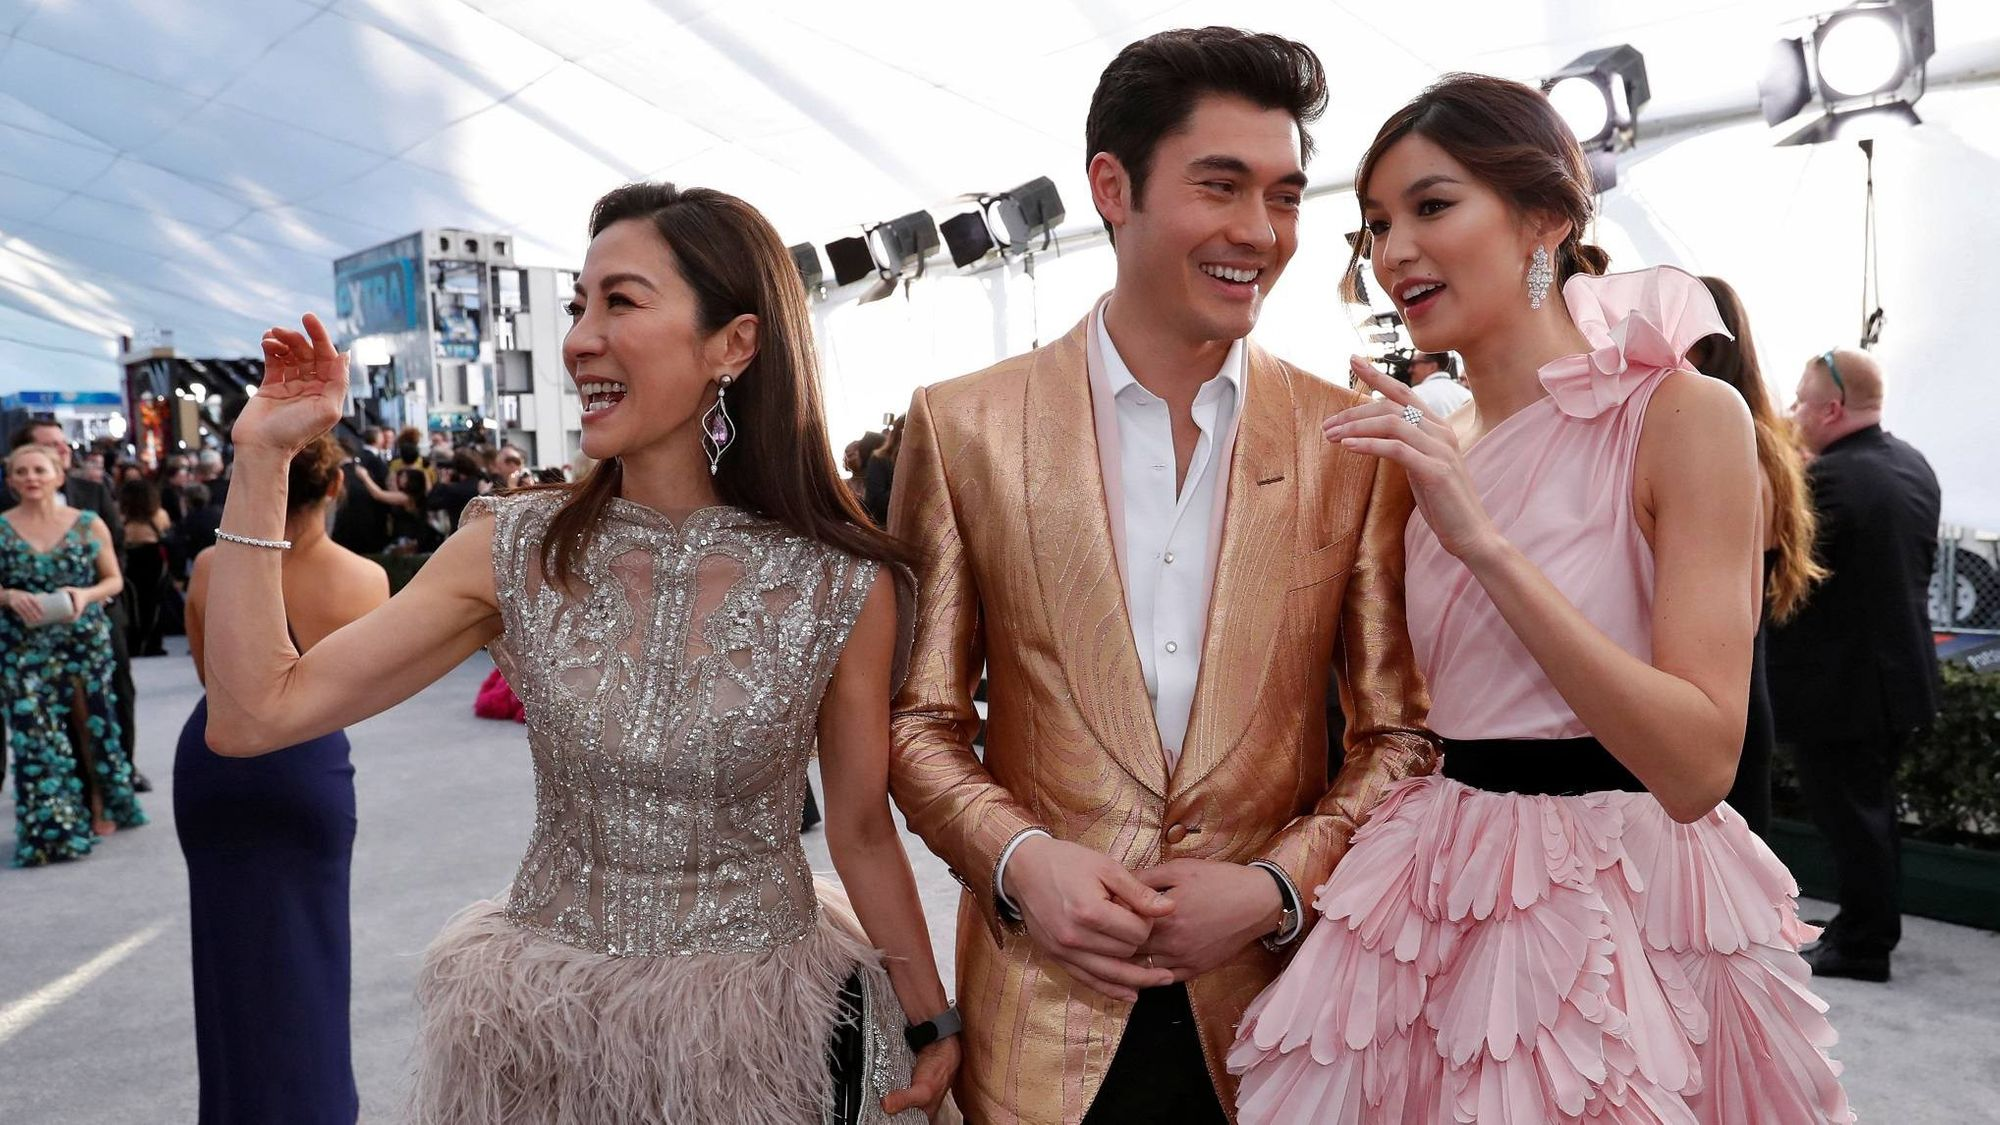 Michelle Yeoh, Henry Golding, and Gemma Chan (Crazy Rich Asians)